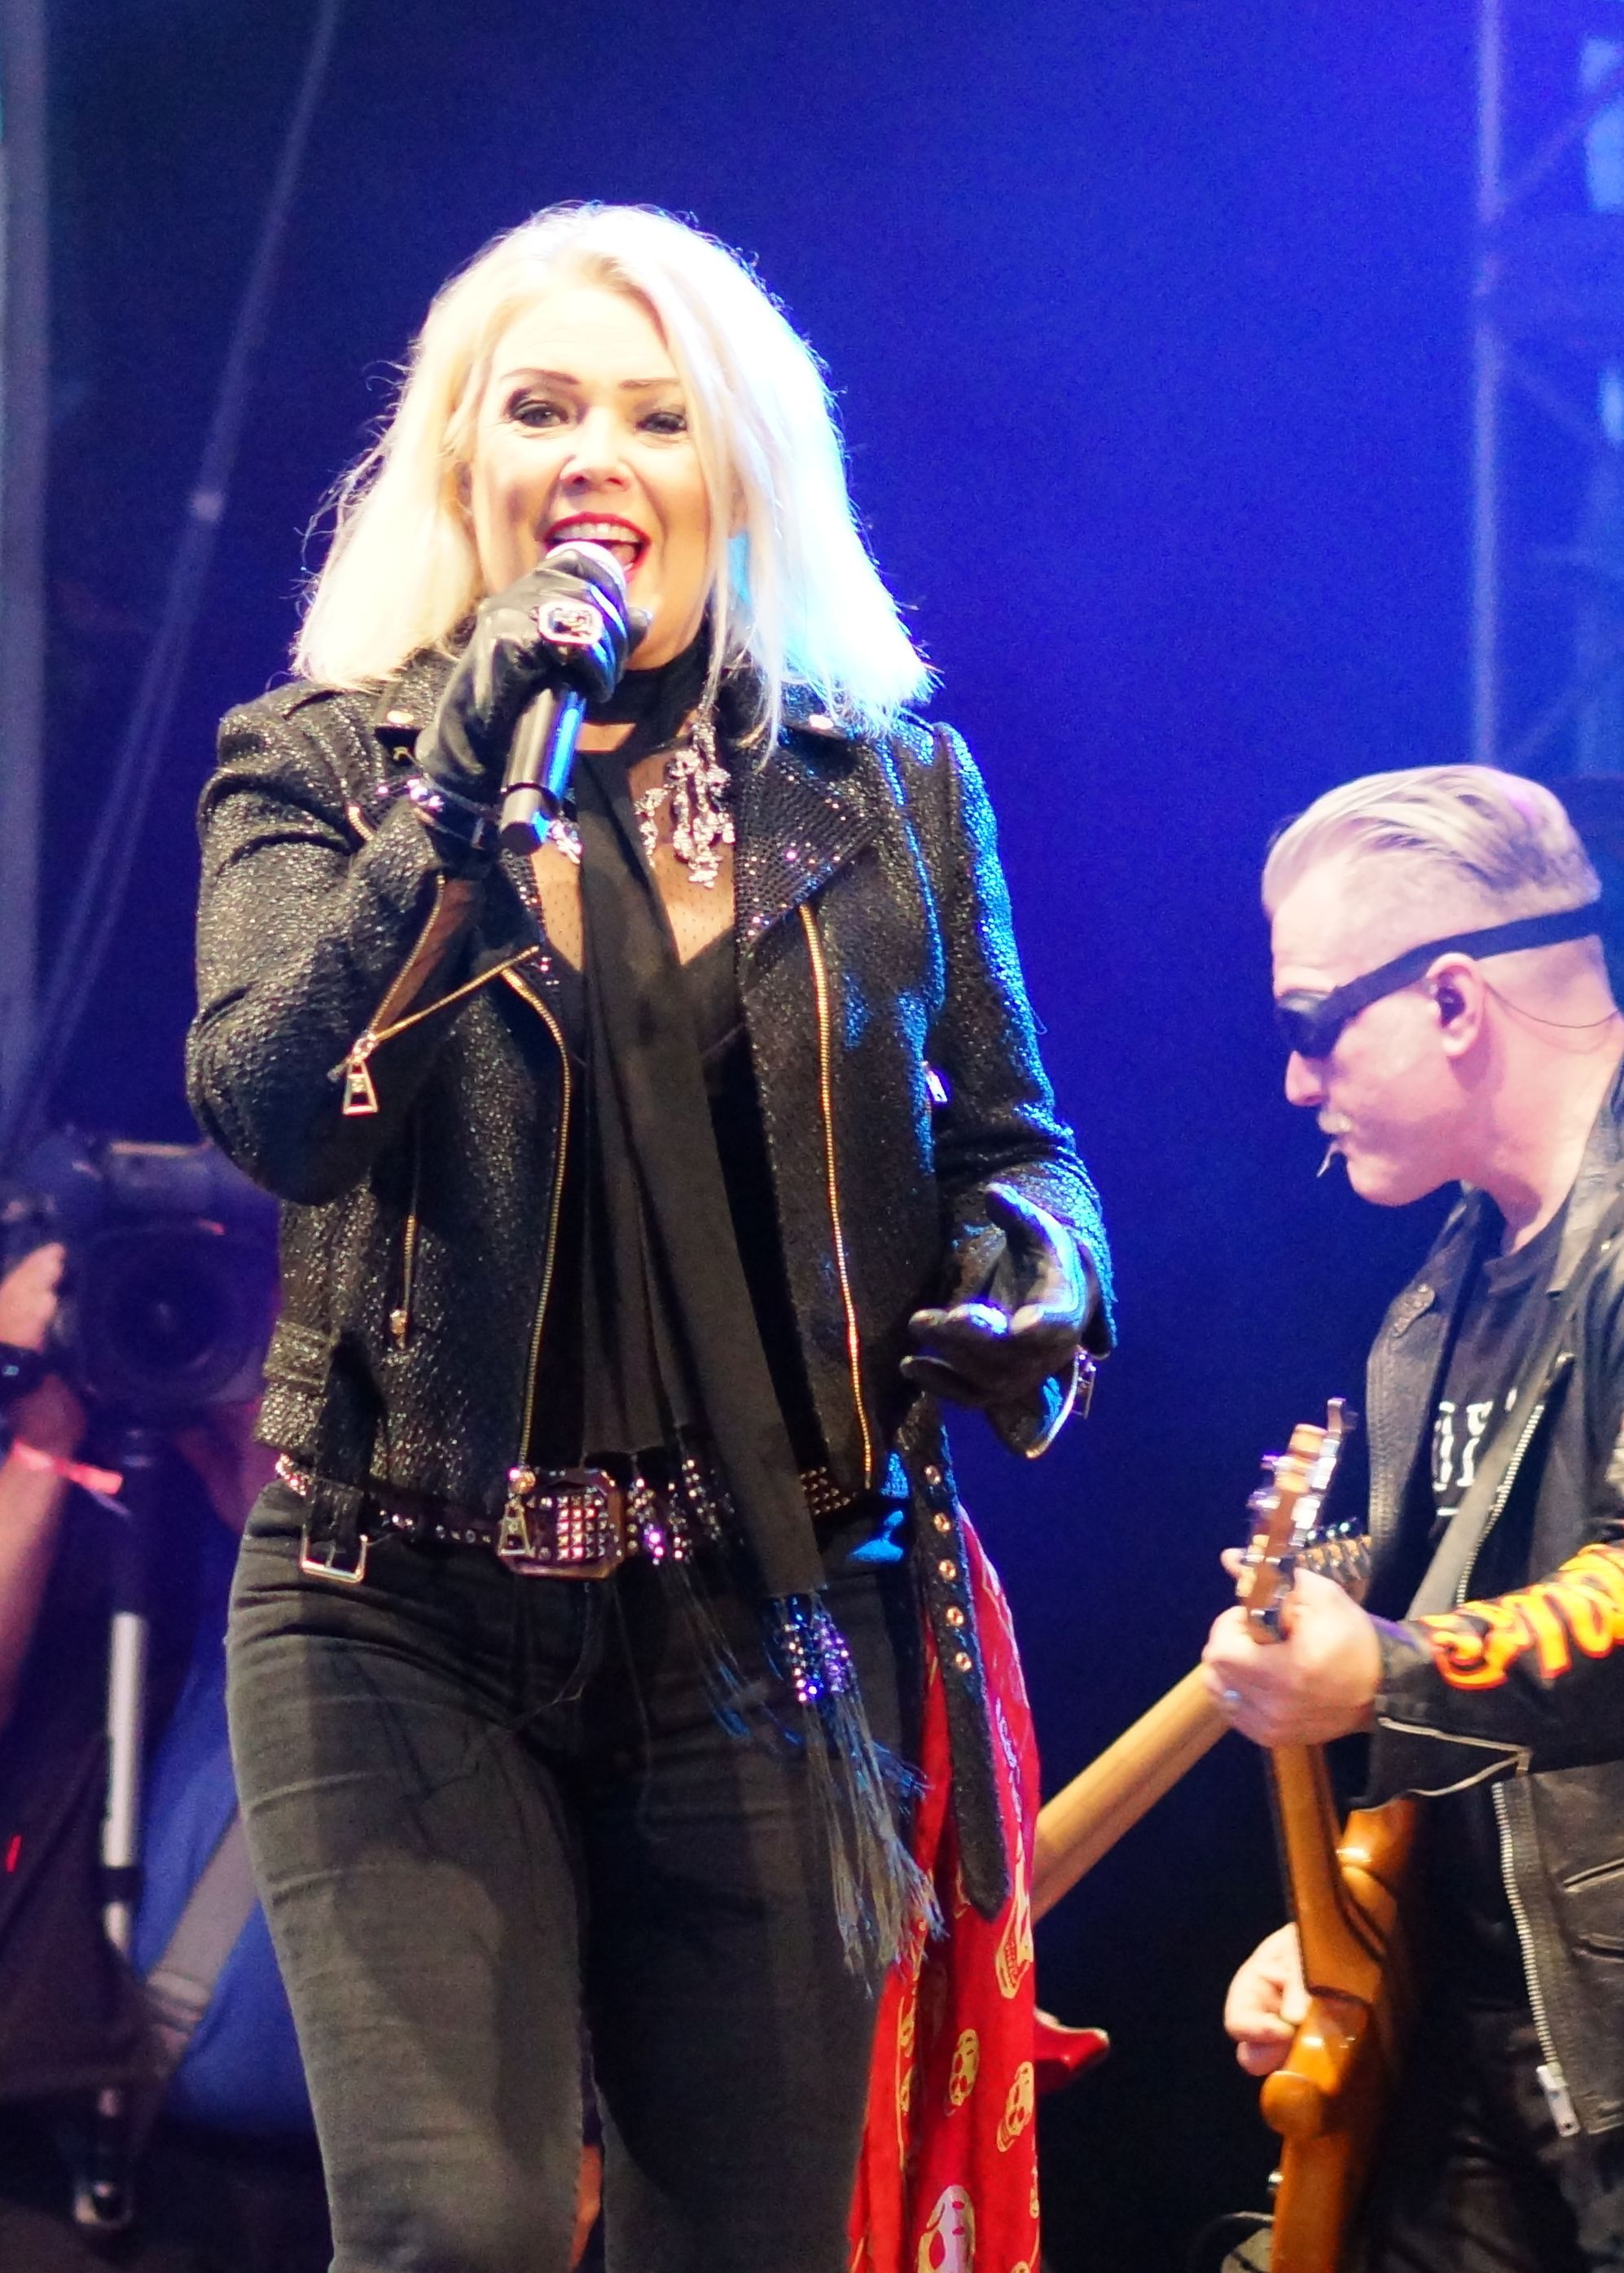 Kim Wilde on stage at the NDR Sommertour in Wilhelmshaven, Germany 07-30-2017